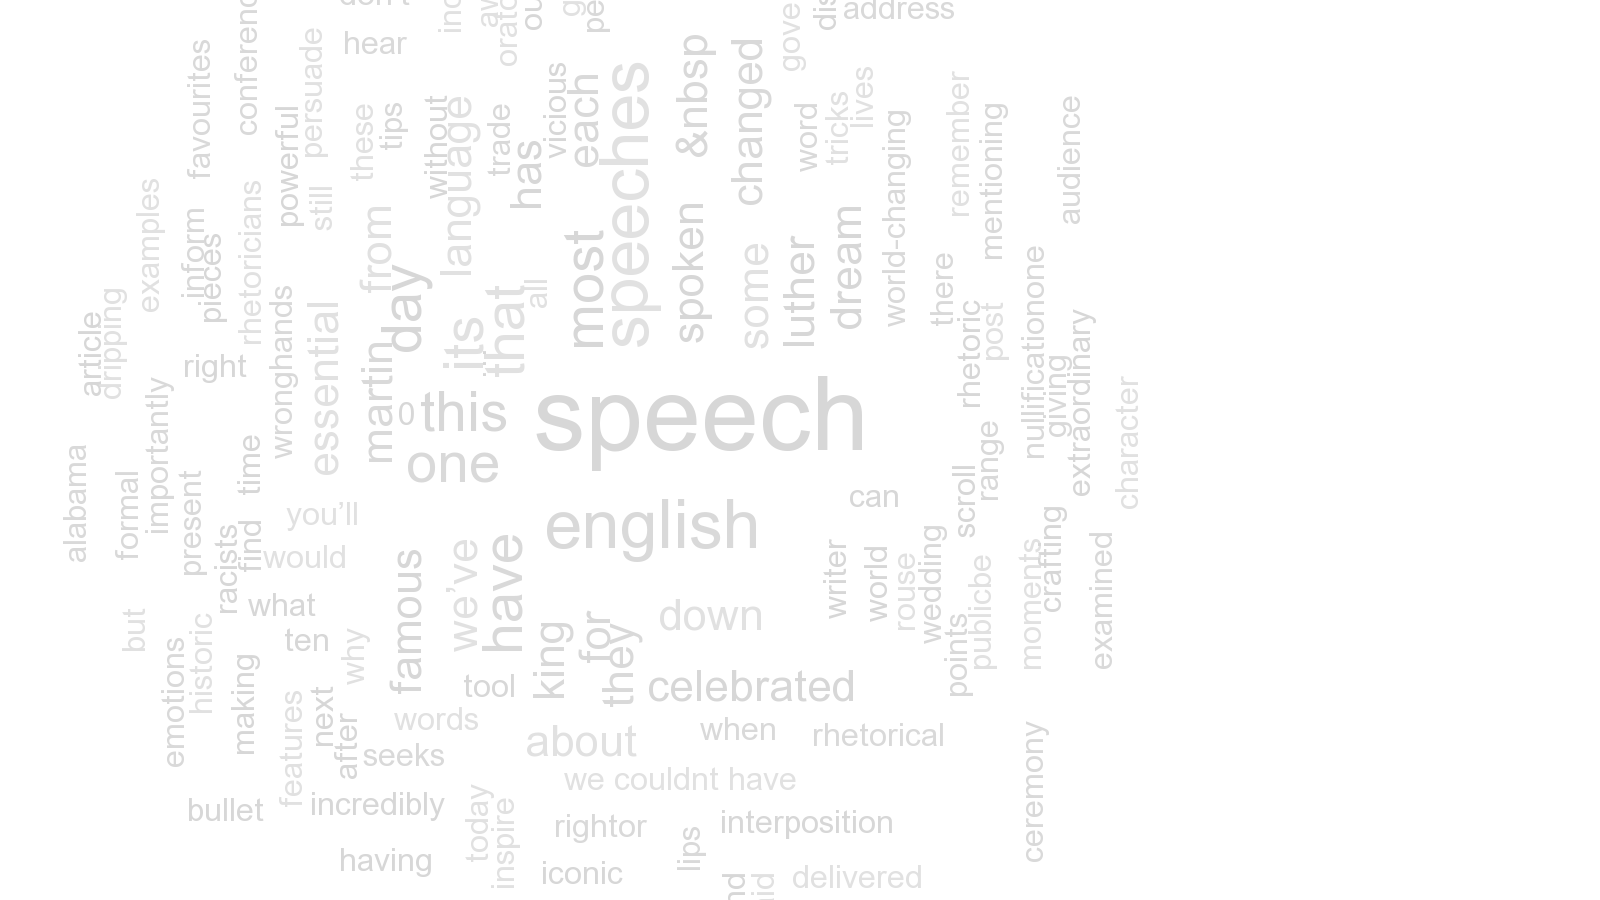 famous speeches in english and what you can learn from them  10 famous speeches in english and what you can learn from them english editing blog